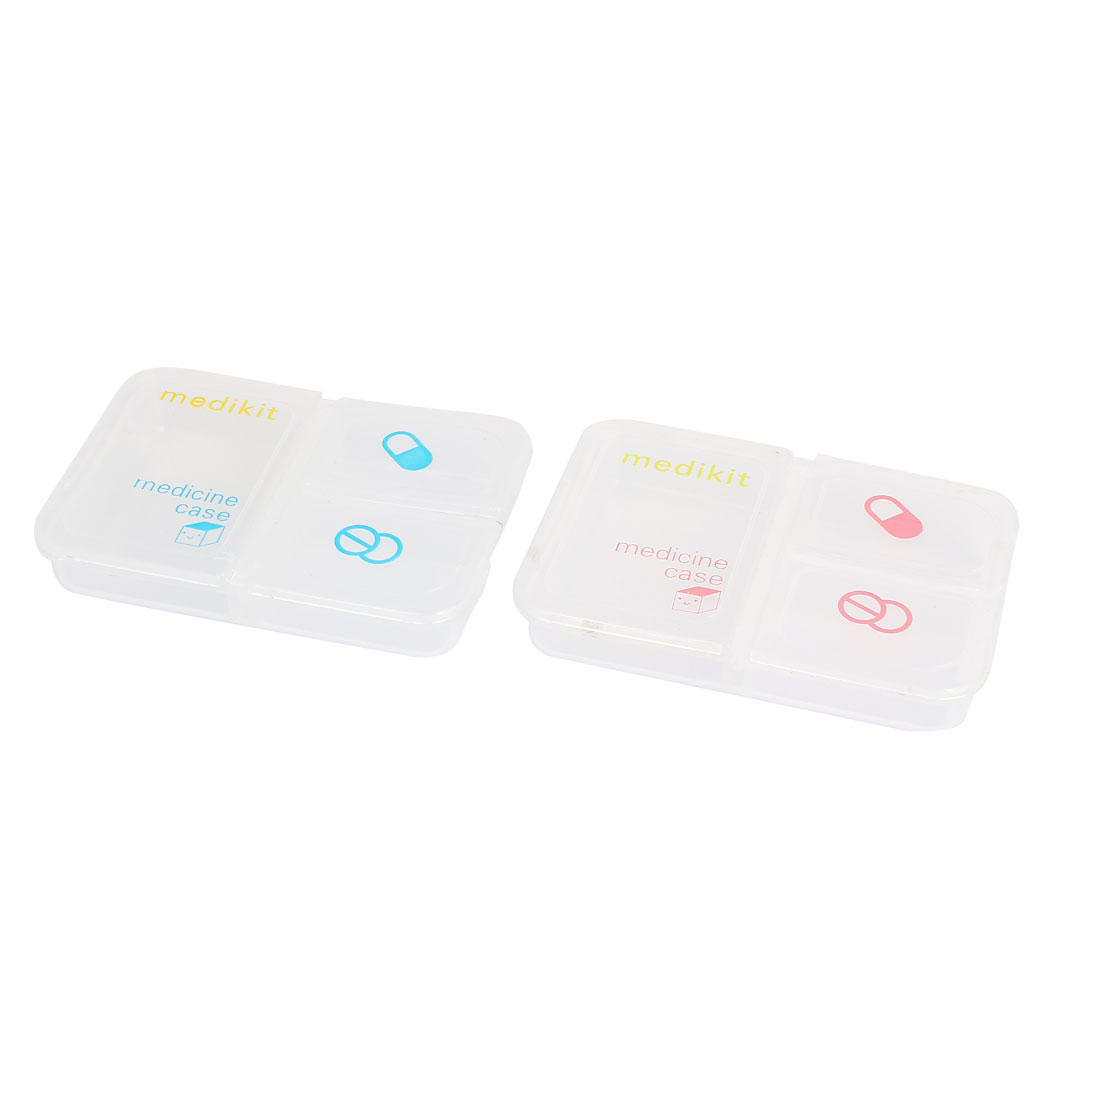 Plastic 3 Compartment Medicine Pill Tablet Storage Box Organizer Container Case Clear 2pcs